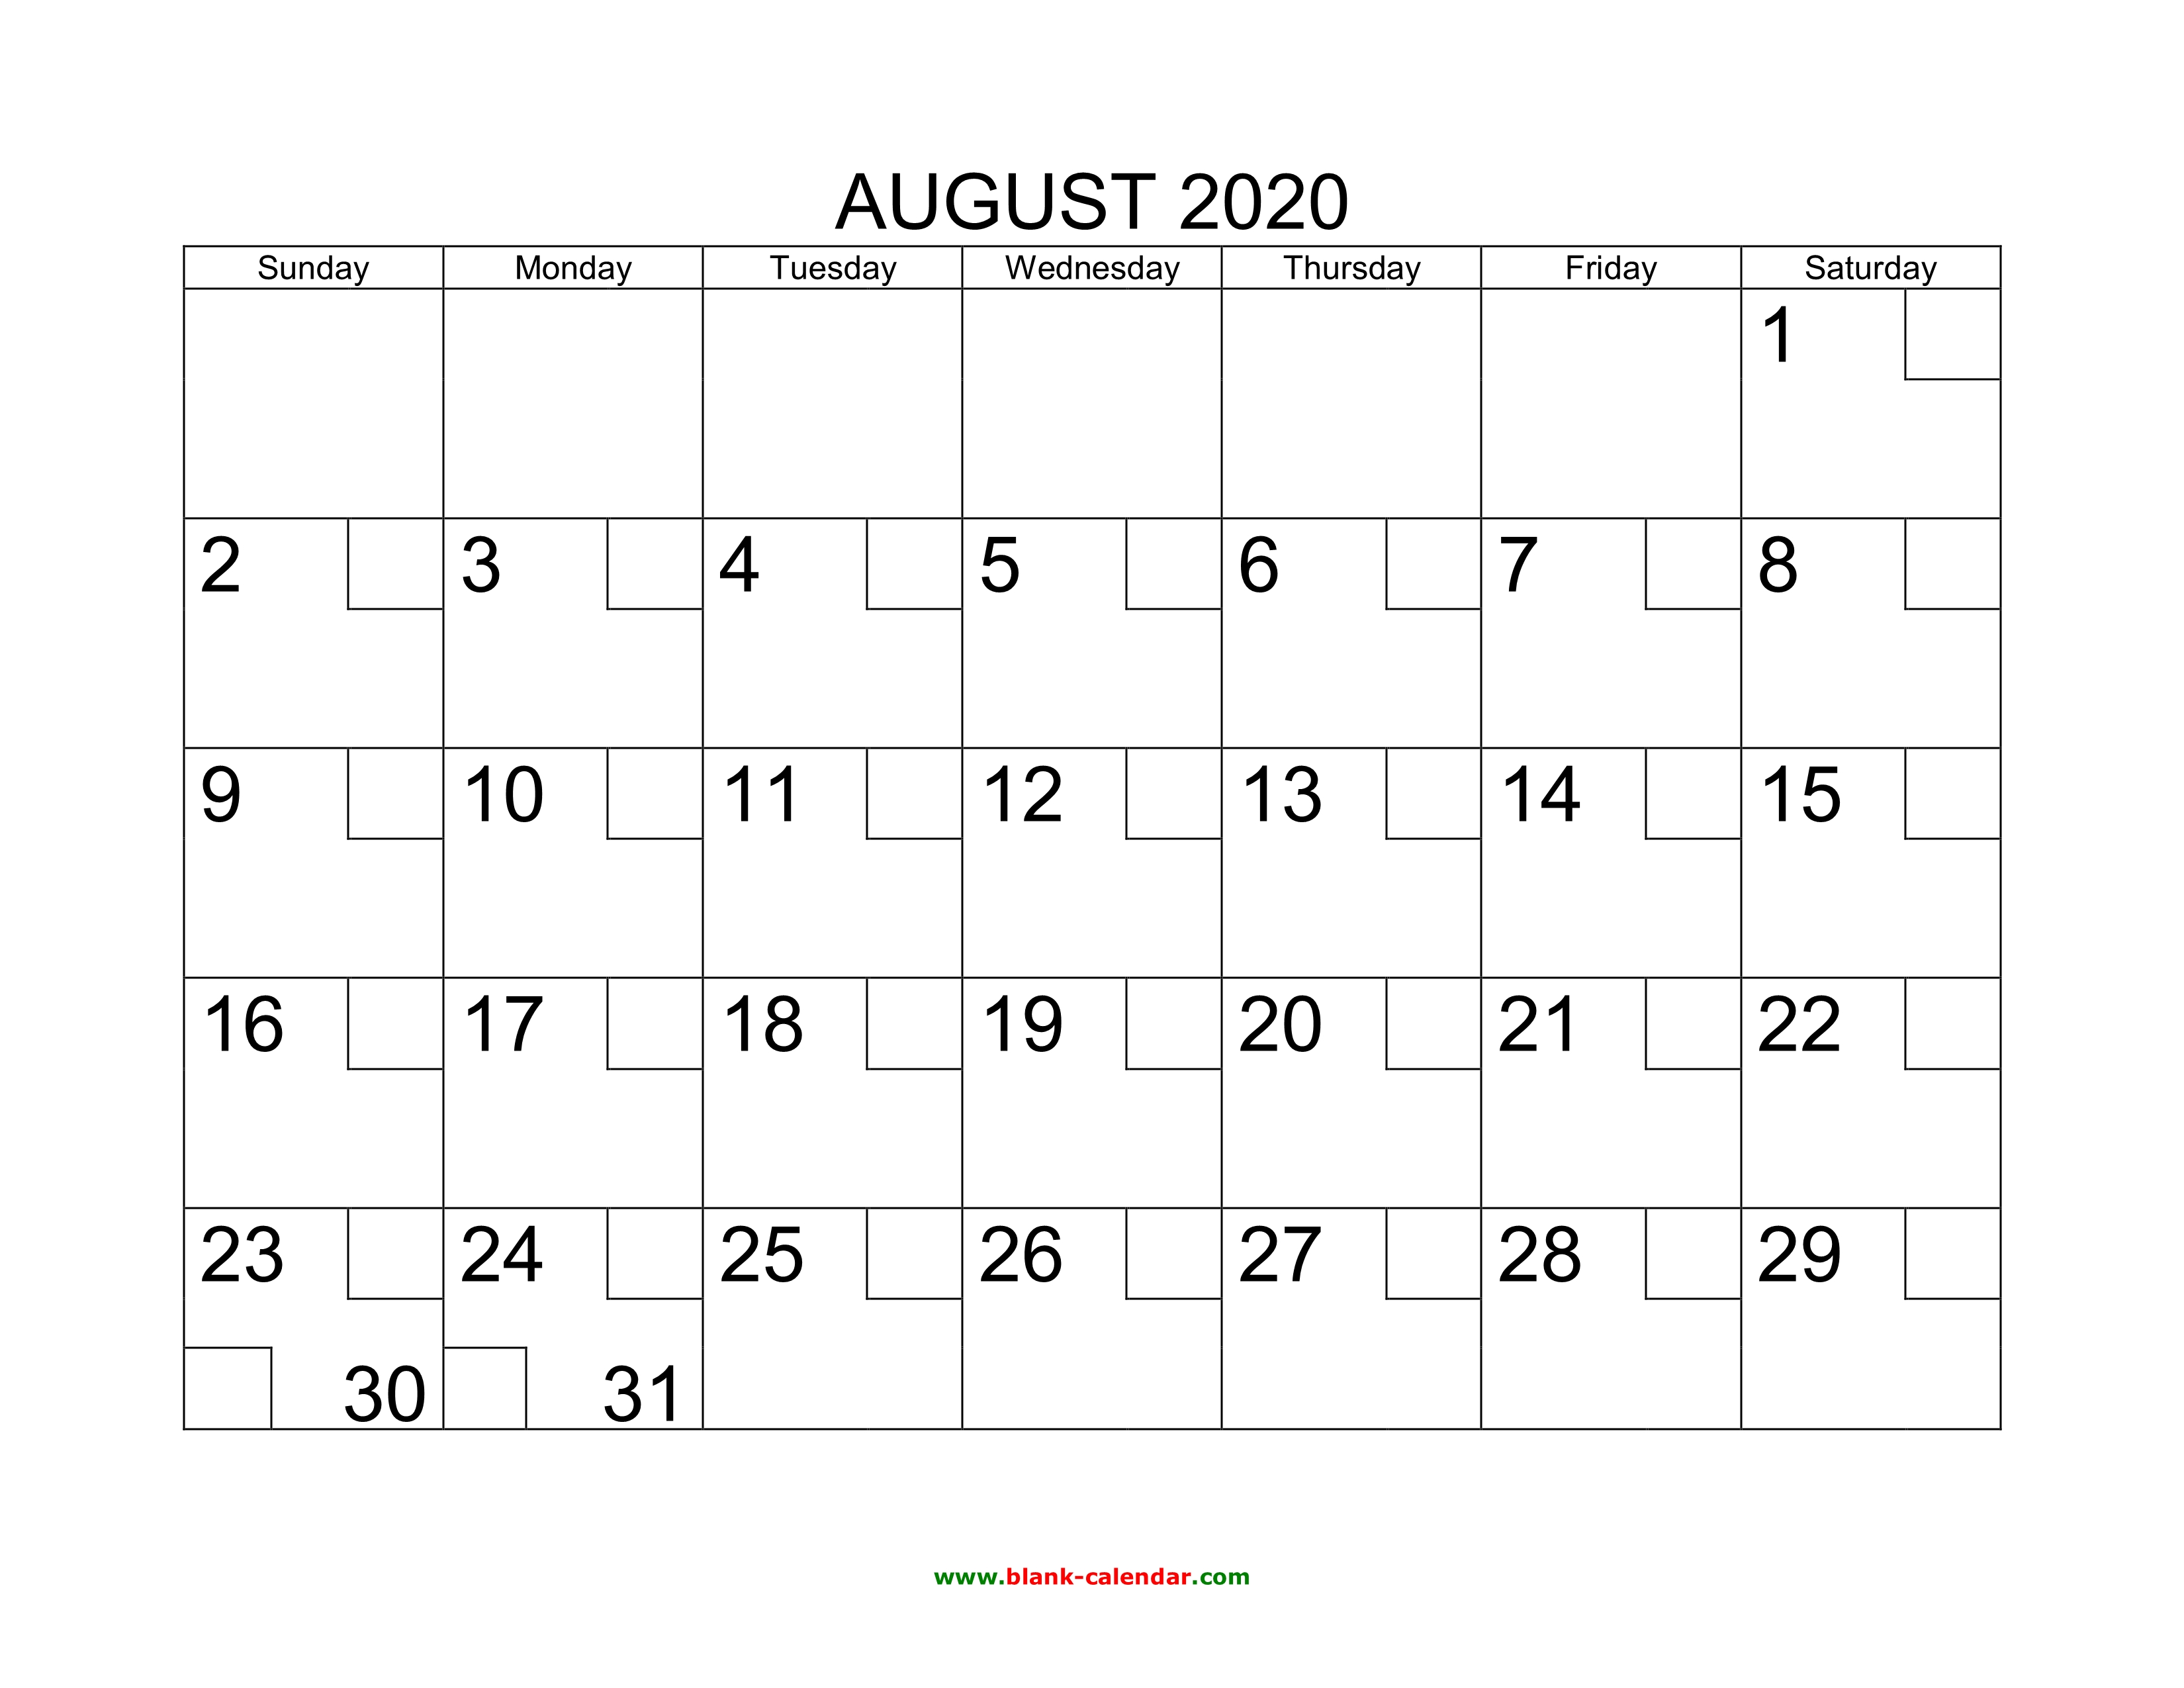 Blank Calendar August 2020.Free Download Printable August 2020 Calendar With Check Boxes